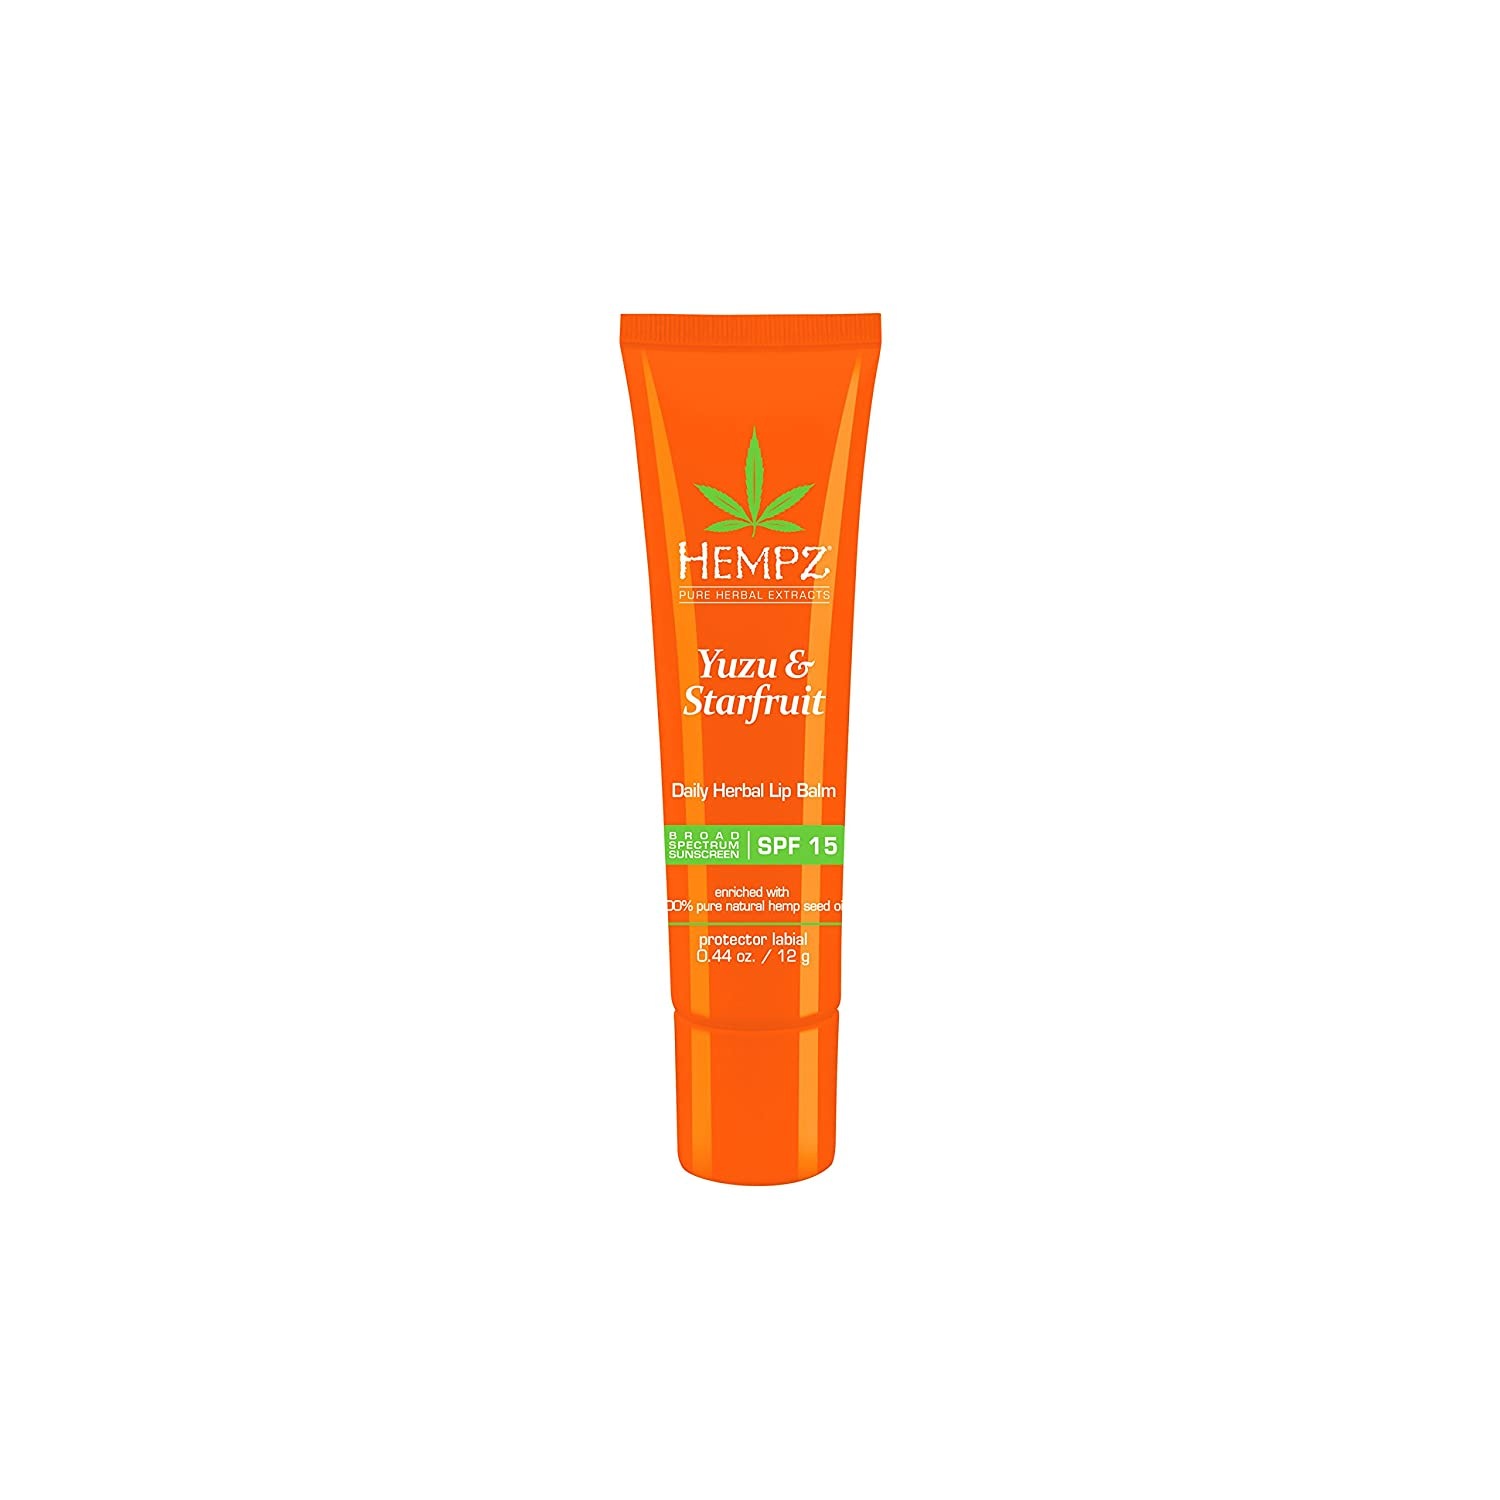 Hempz Yuzu & Starfruit Daily Herbal Lip Balm with SPF 15, .44 oz. - Scented Lip Moisturizer with Sunscreen - Broad Spectrum SPF 15, Protection against UVA/UVB rays - 100% Natural Hemp Seed Oil